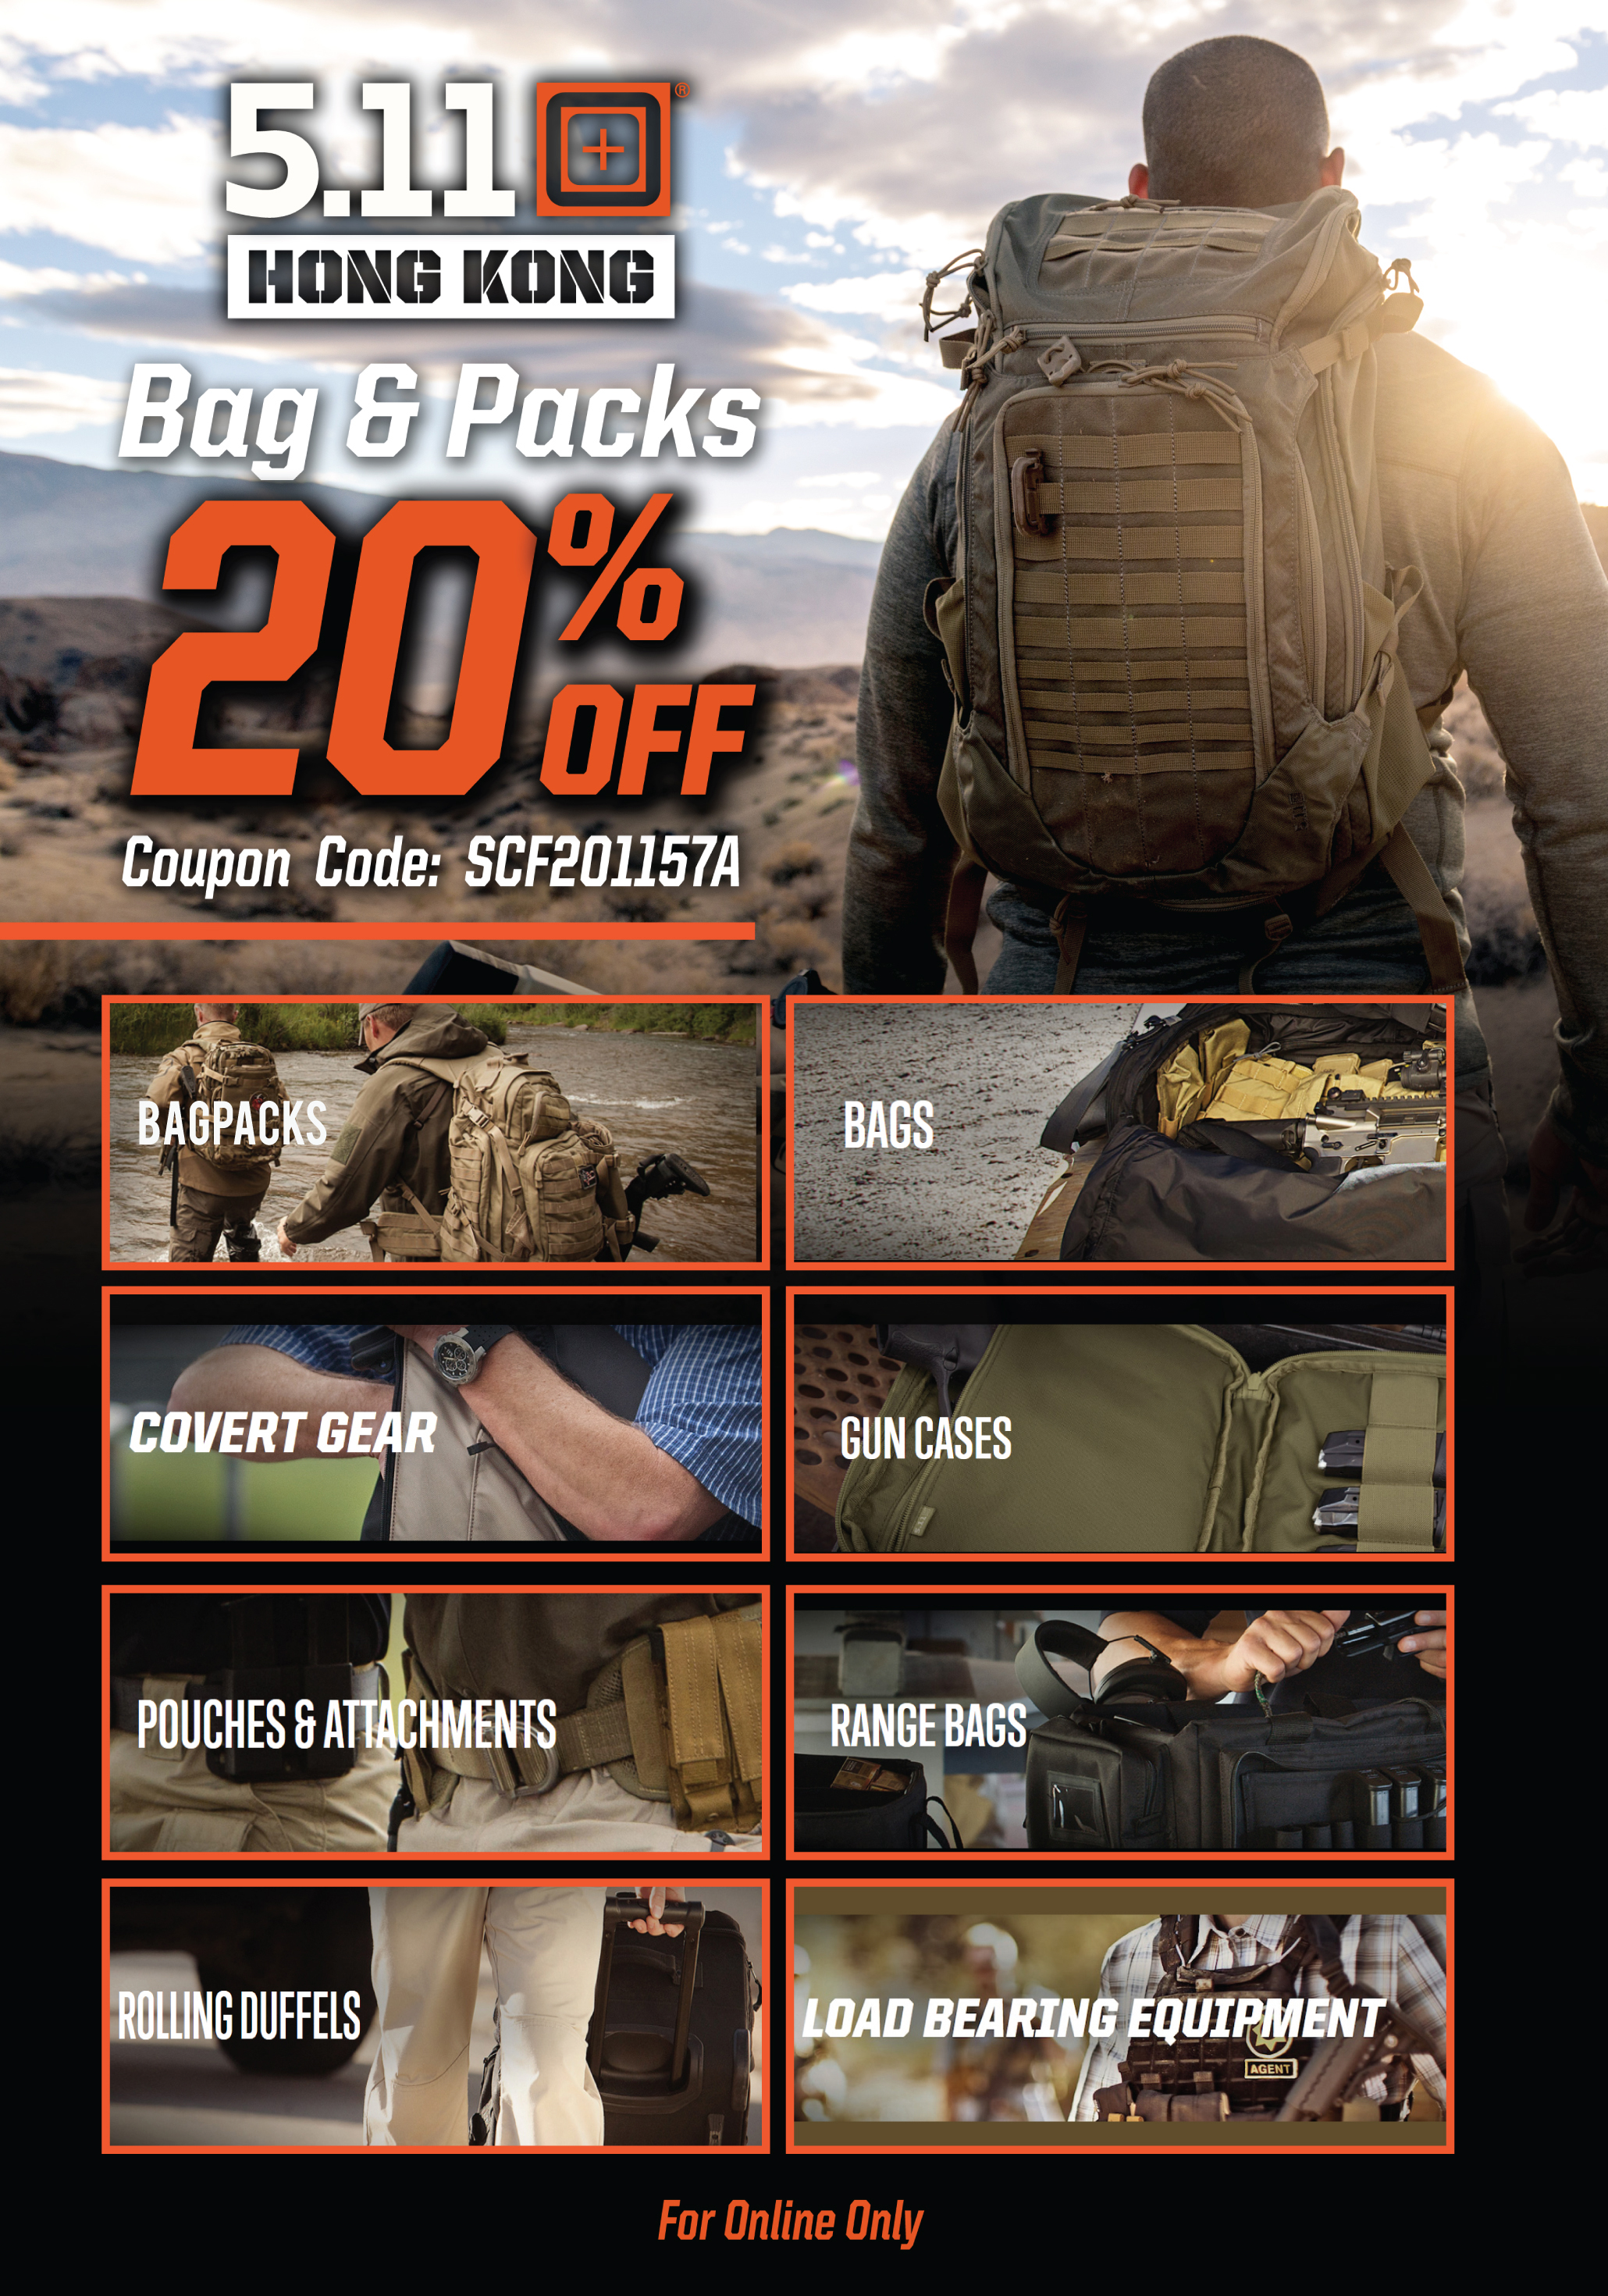 511 Bags & Pack Special - 20% OFF Ver2